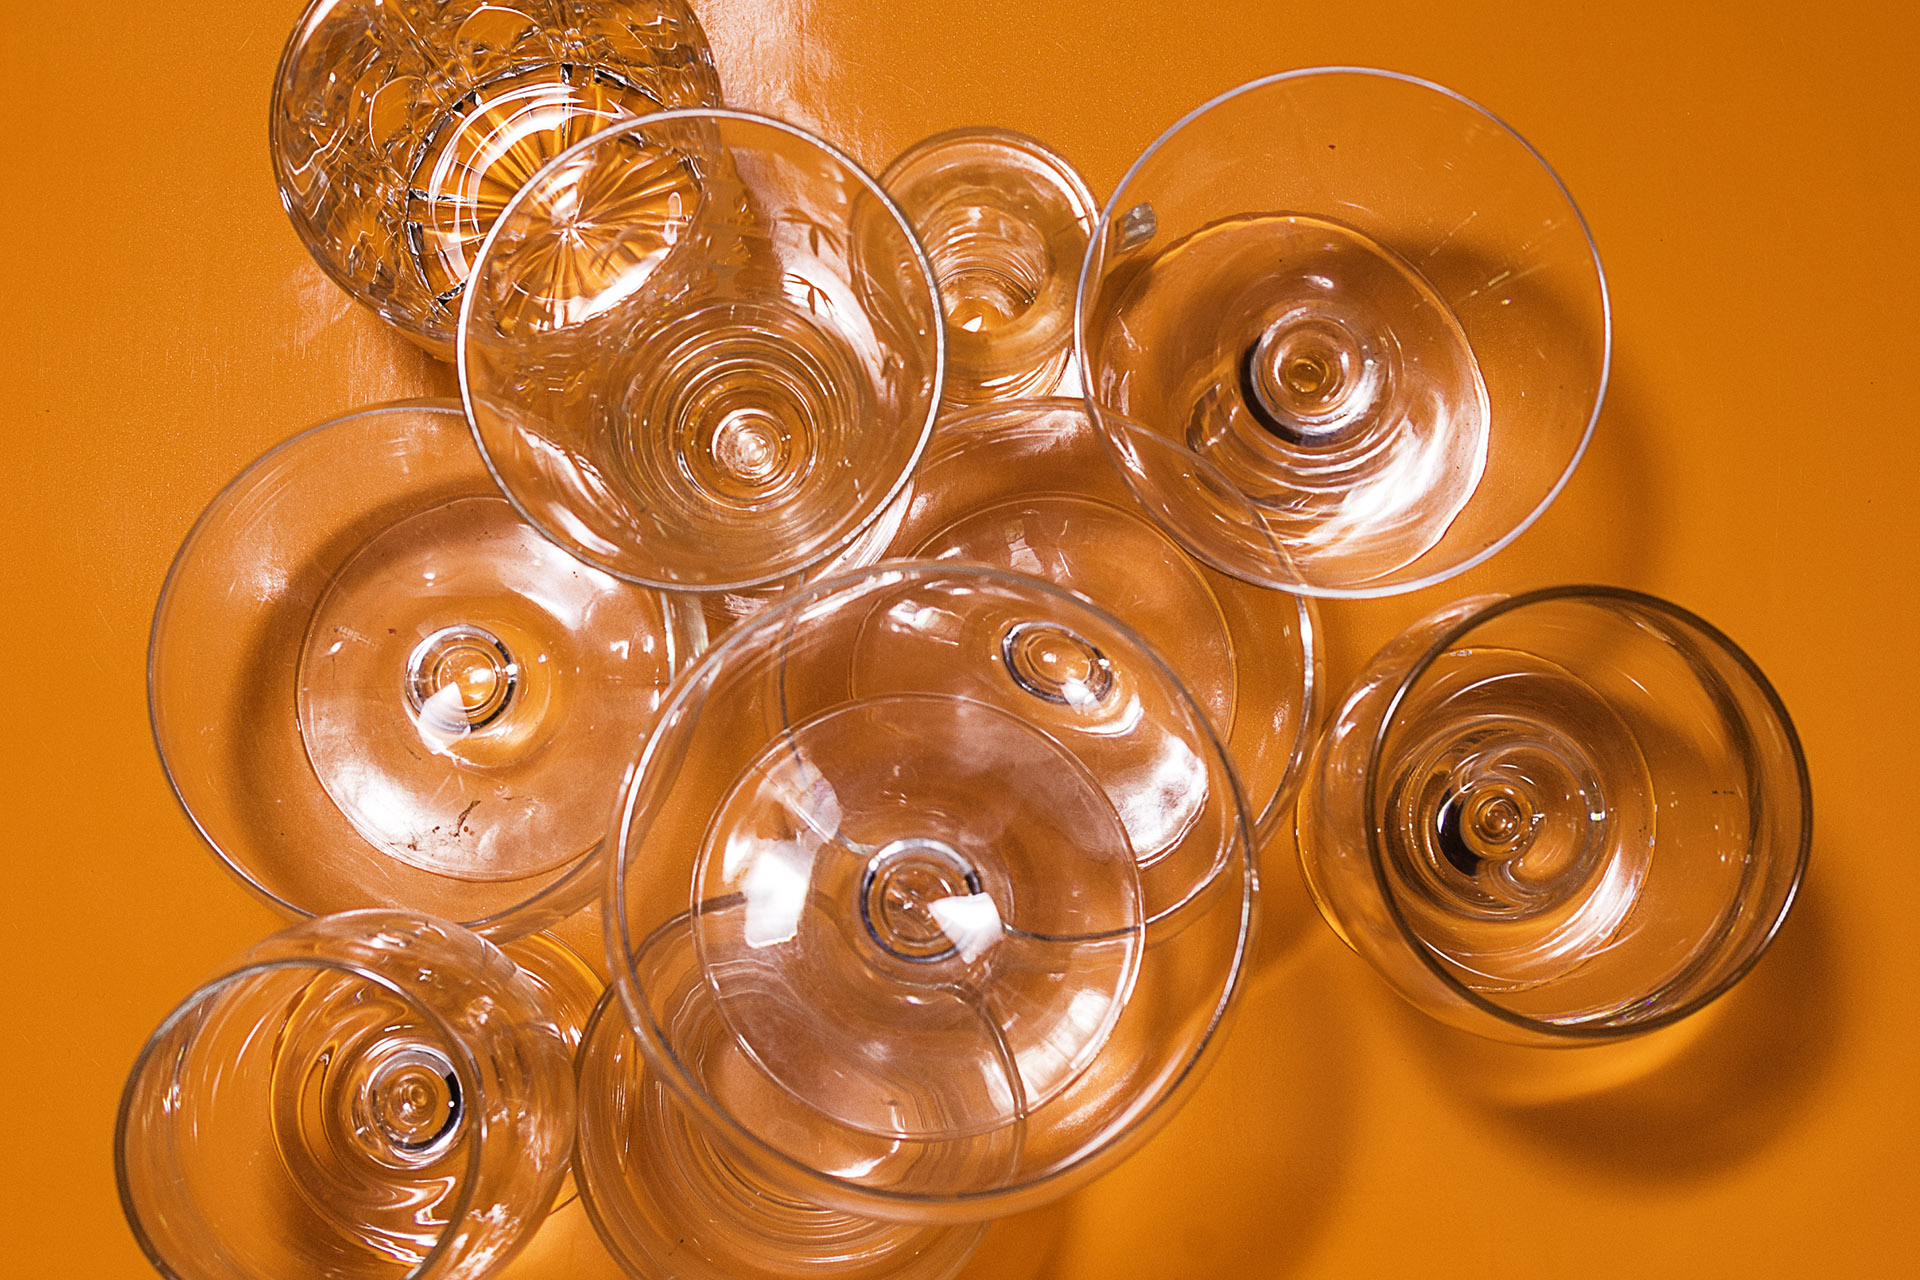 Wine glasses on an orange background